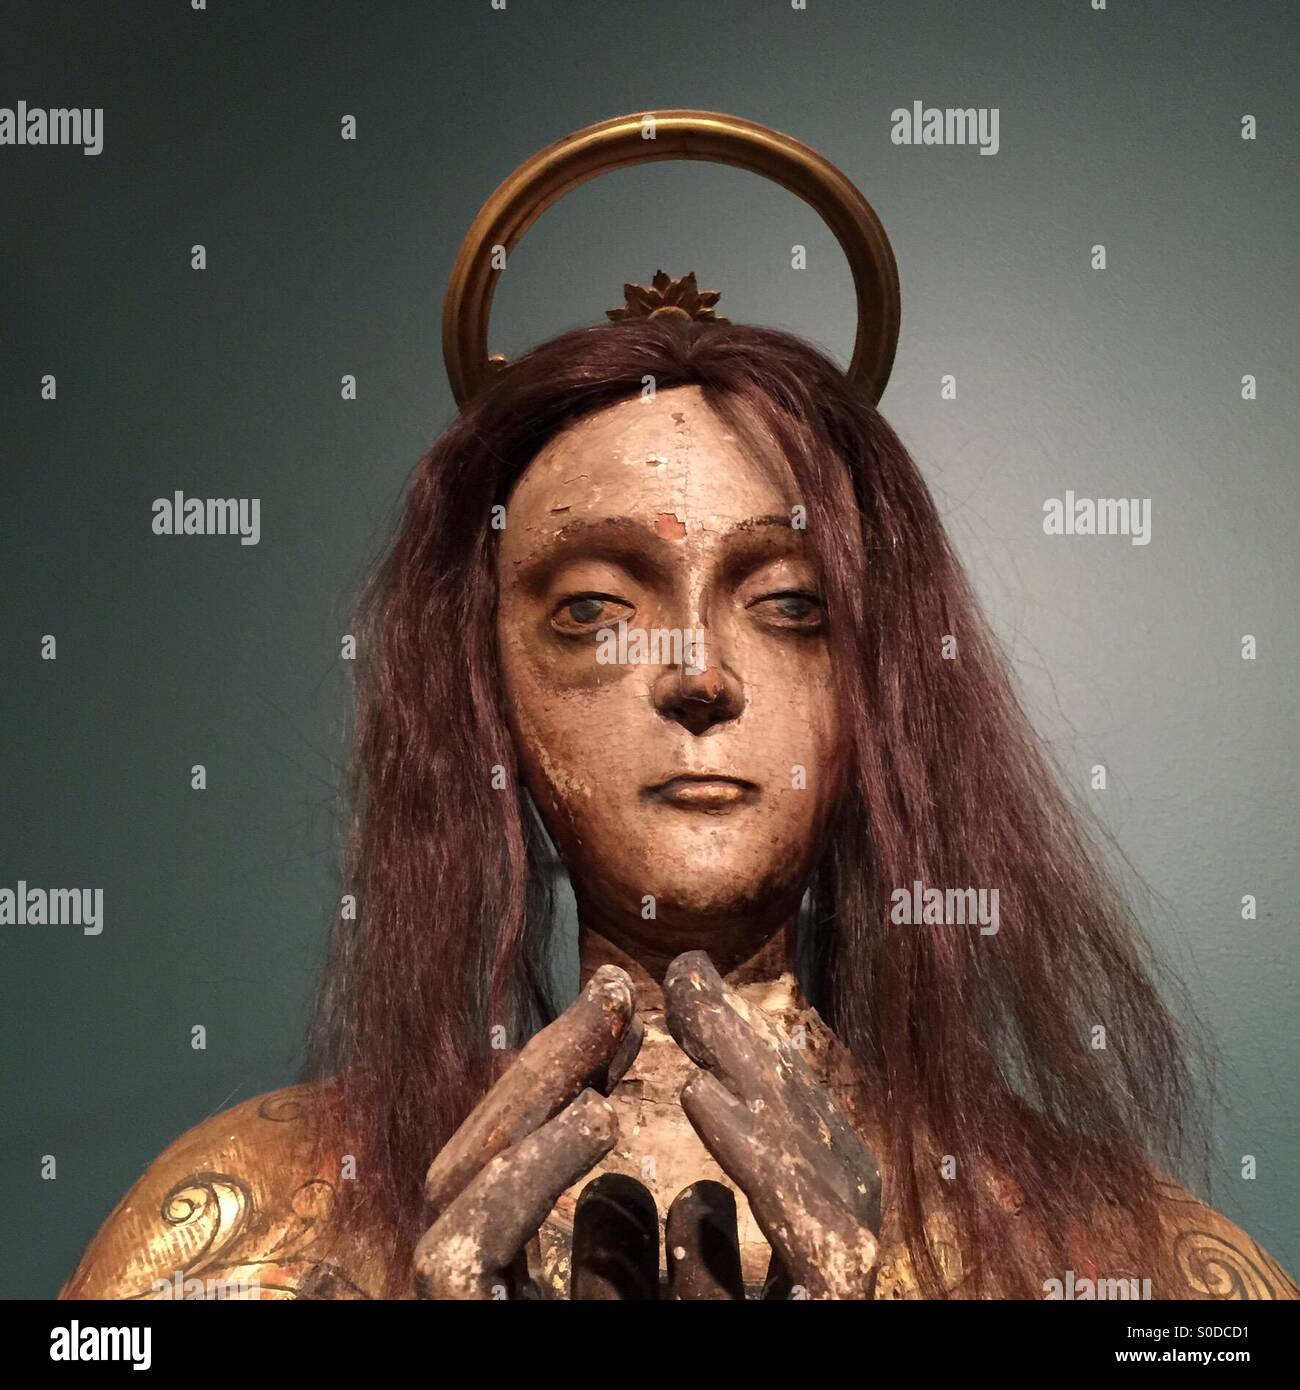 statue-of-our-lady-of-sorrows-the-virgin-mary-S0DCD1.jpg